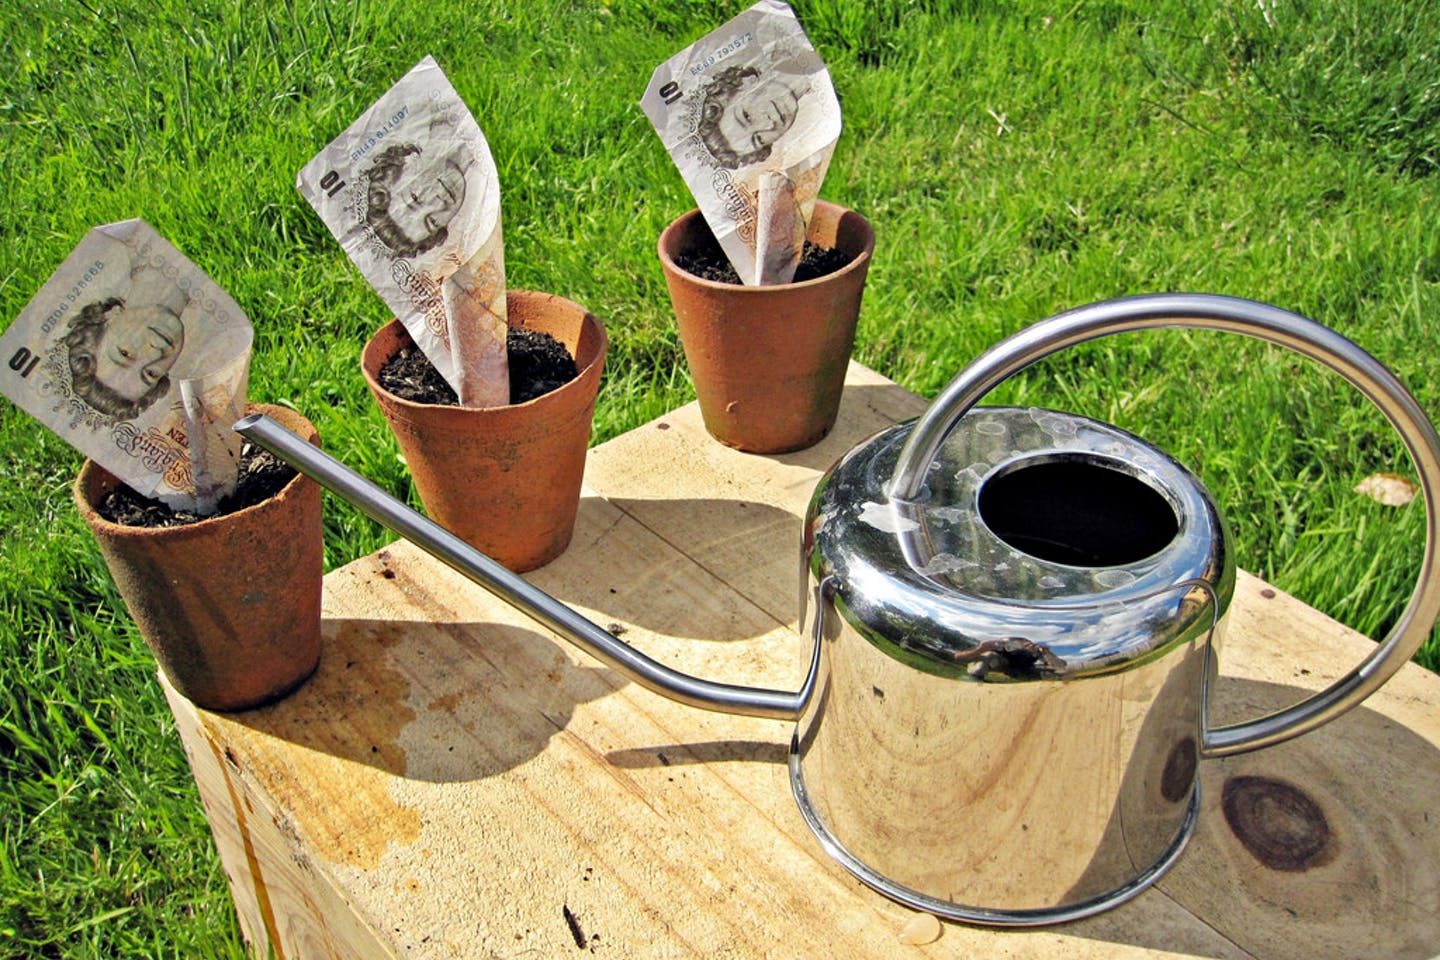 growing some money in a pot